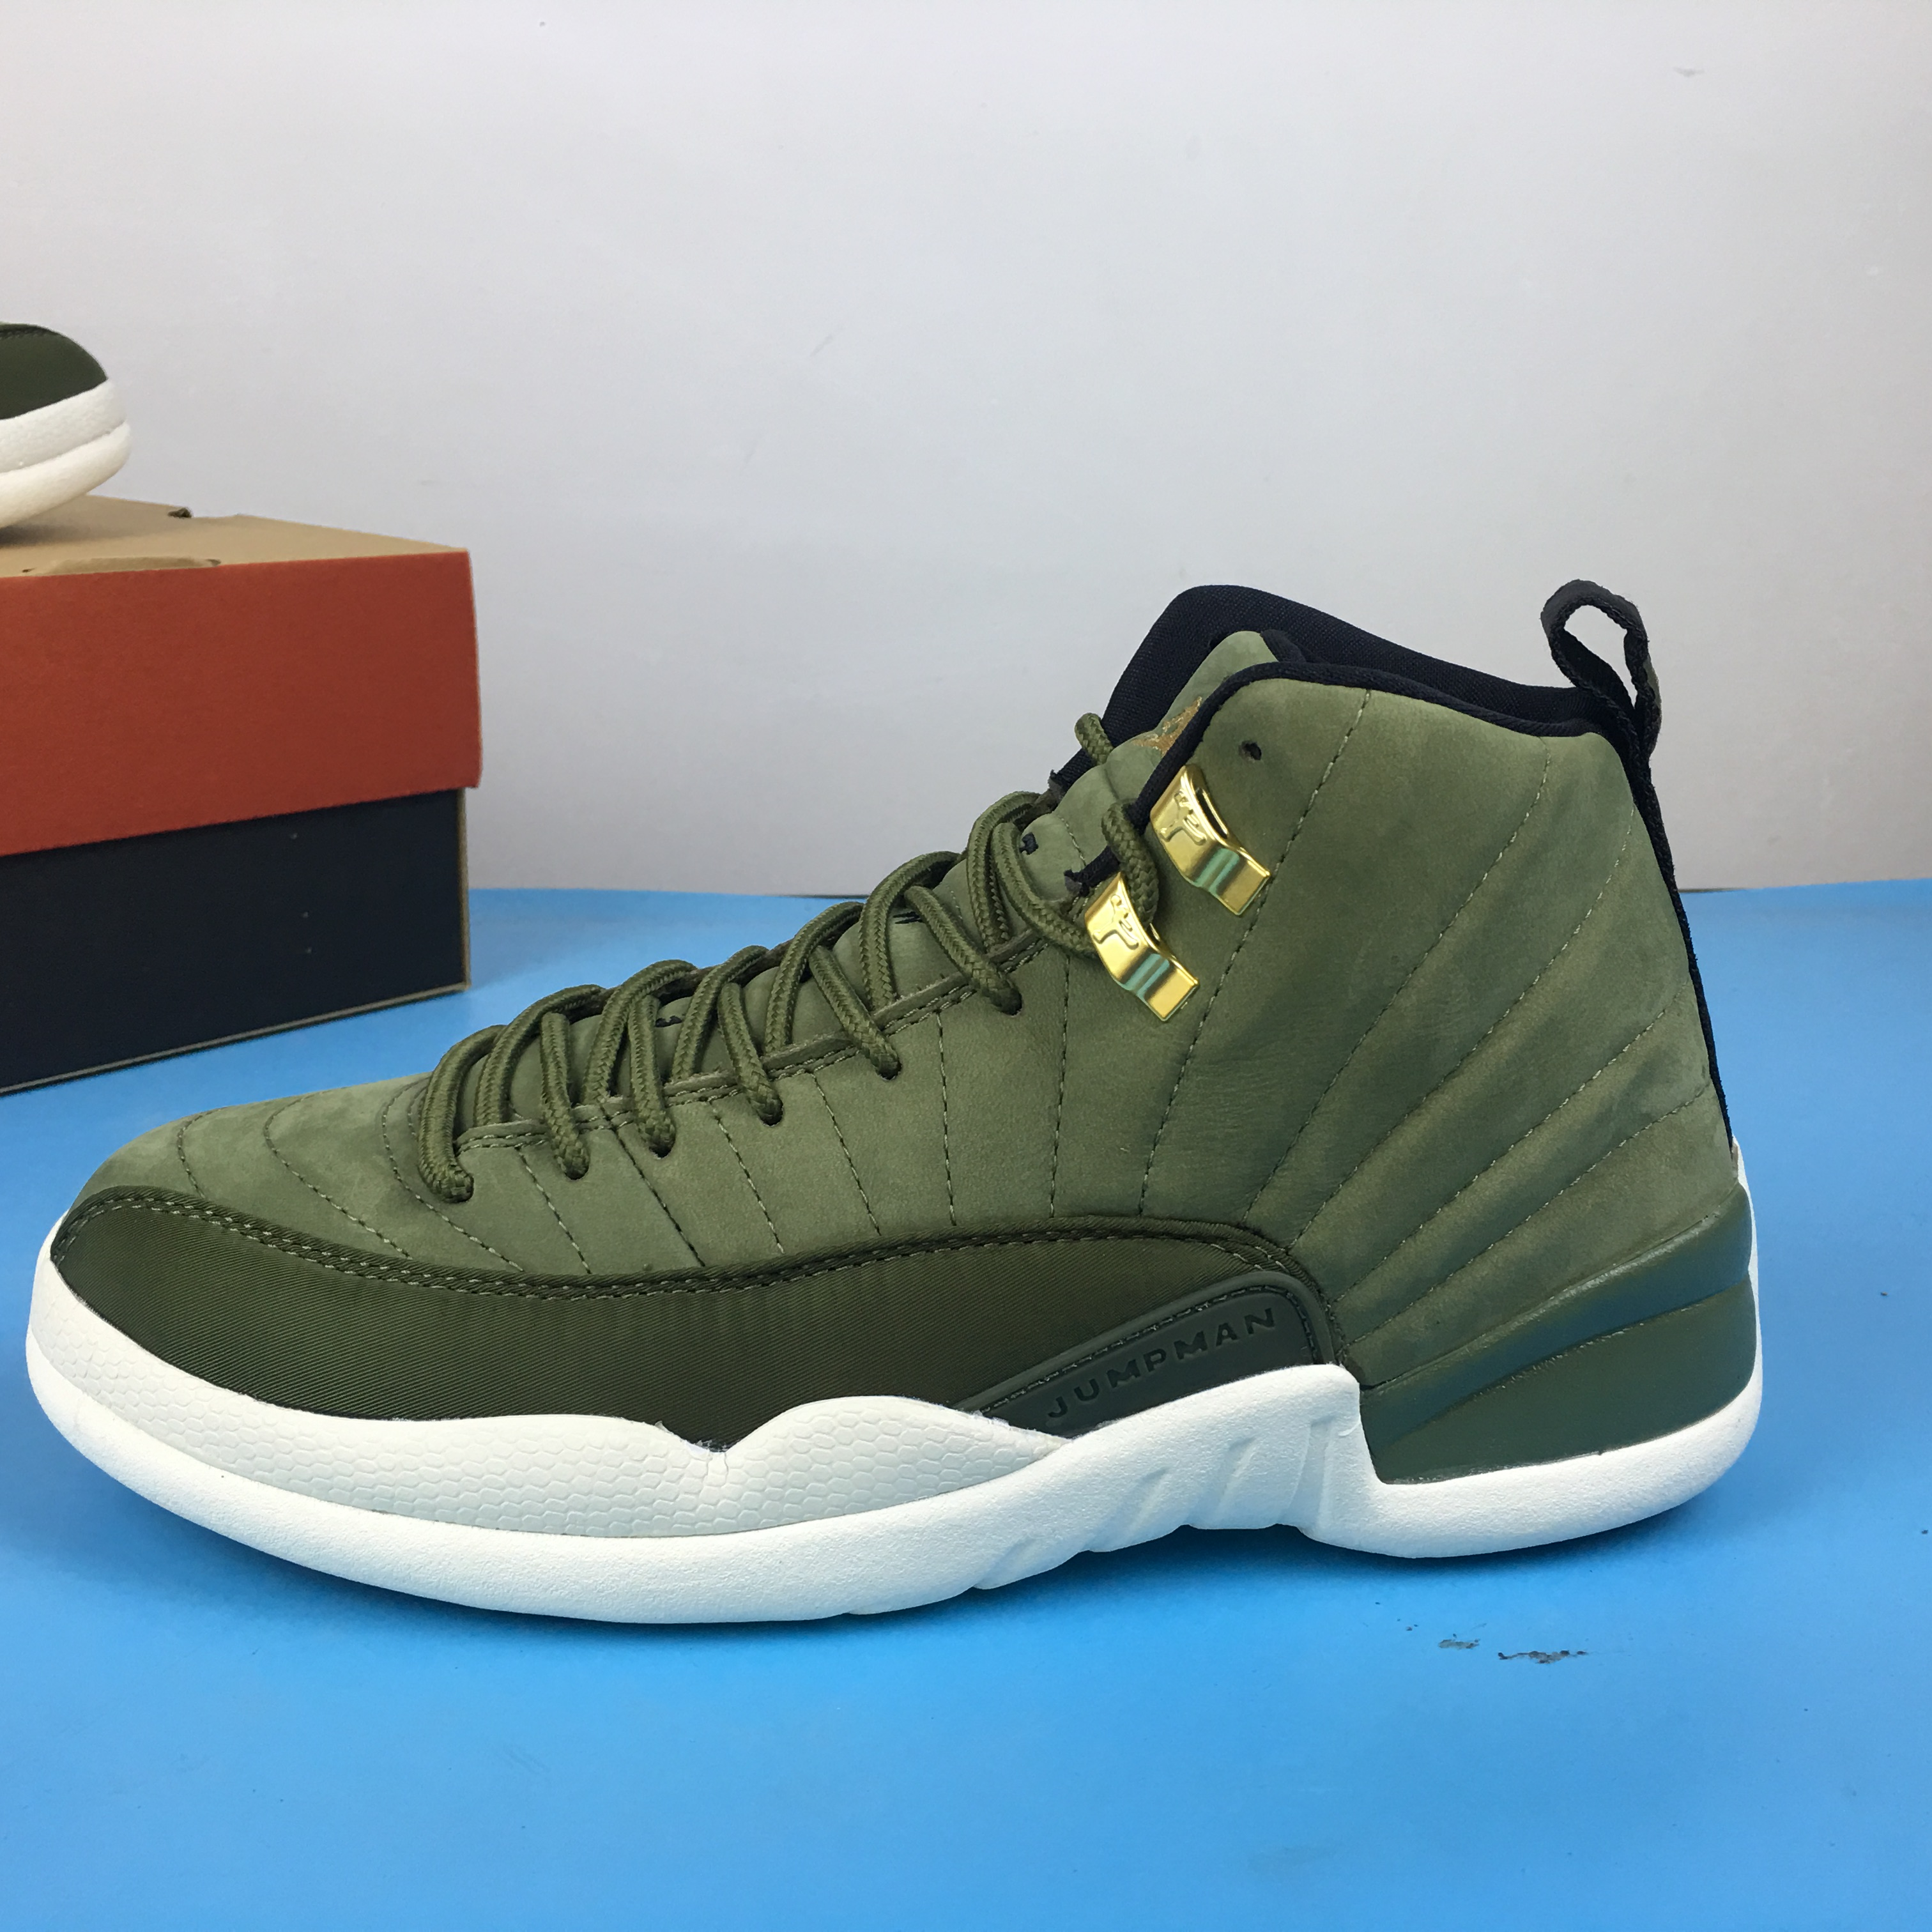 Air Jordan 12 Graduation Pack Green White Shoes